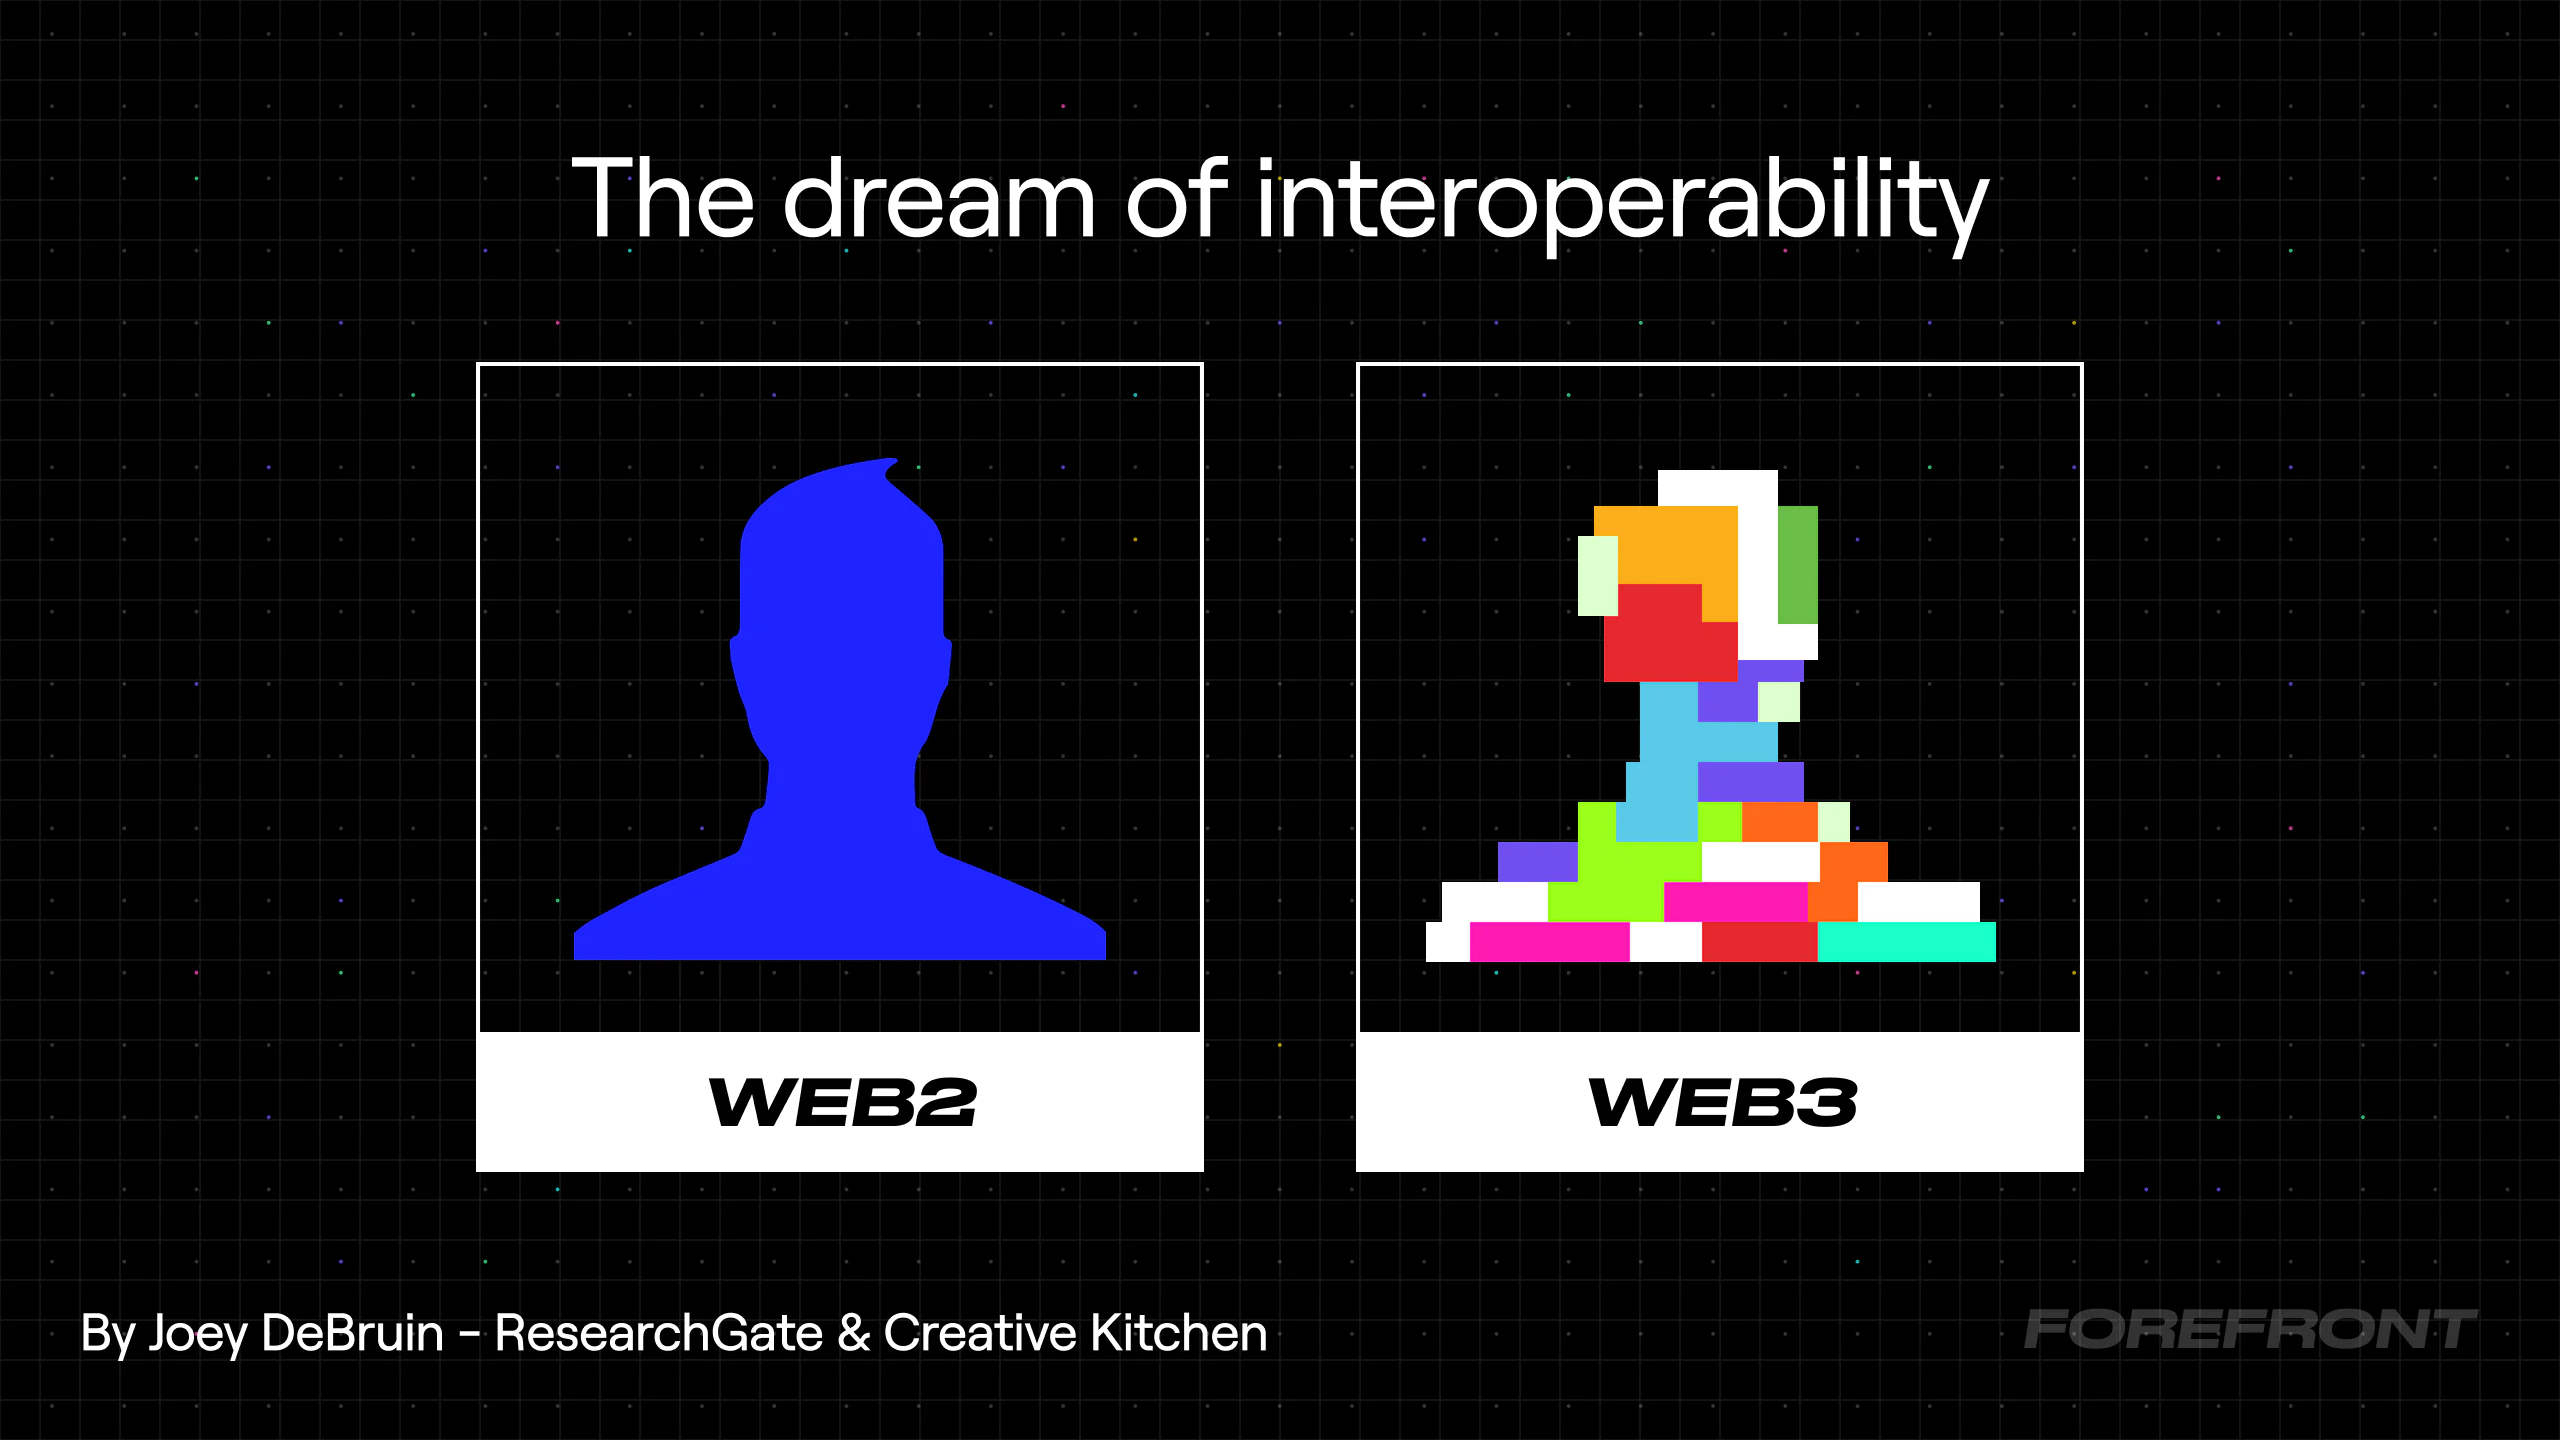 Take Mirror as an example, interoperability may drain the moat of Web 2